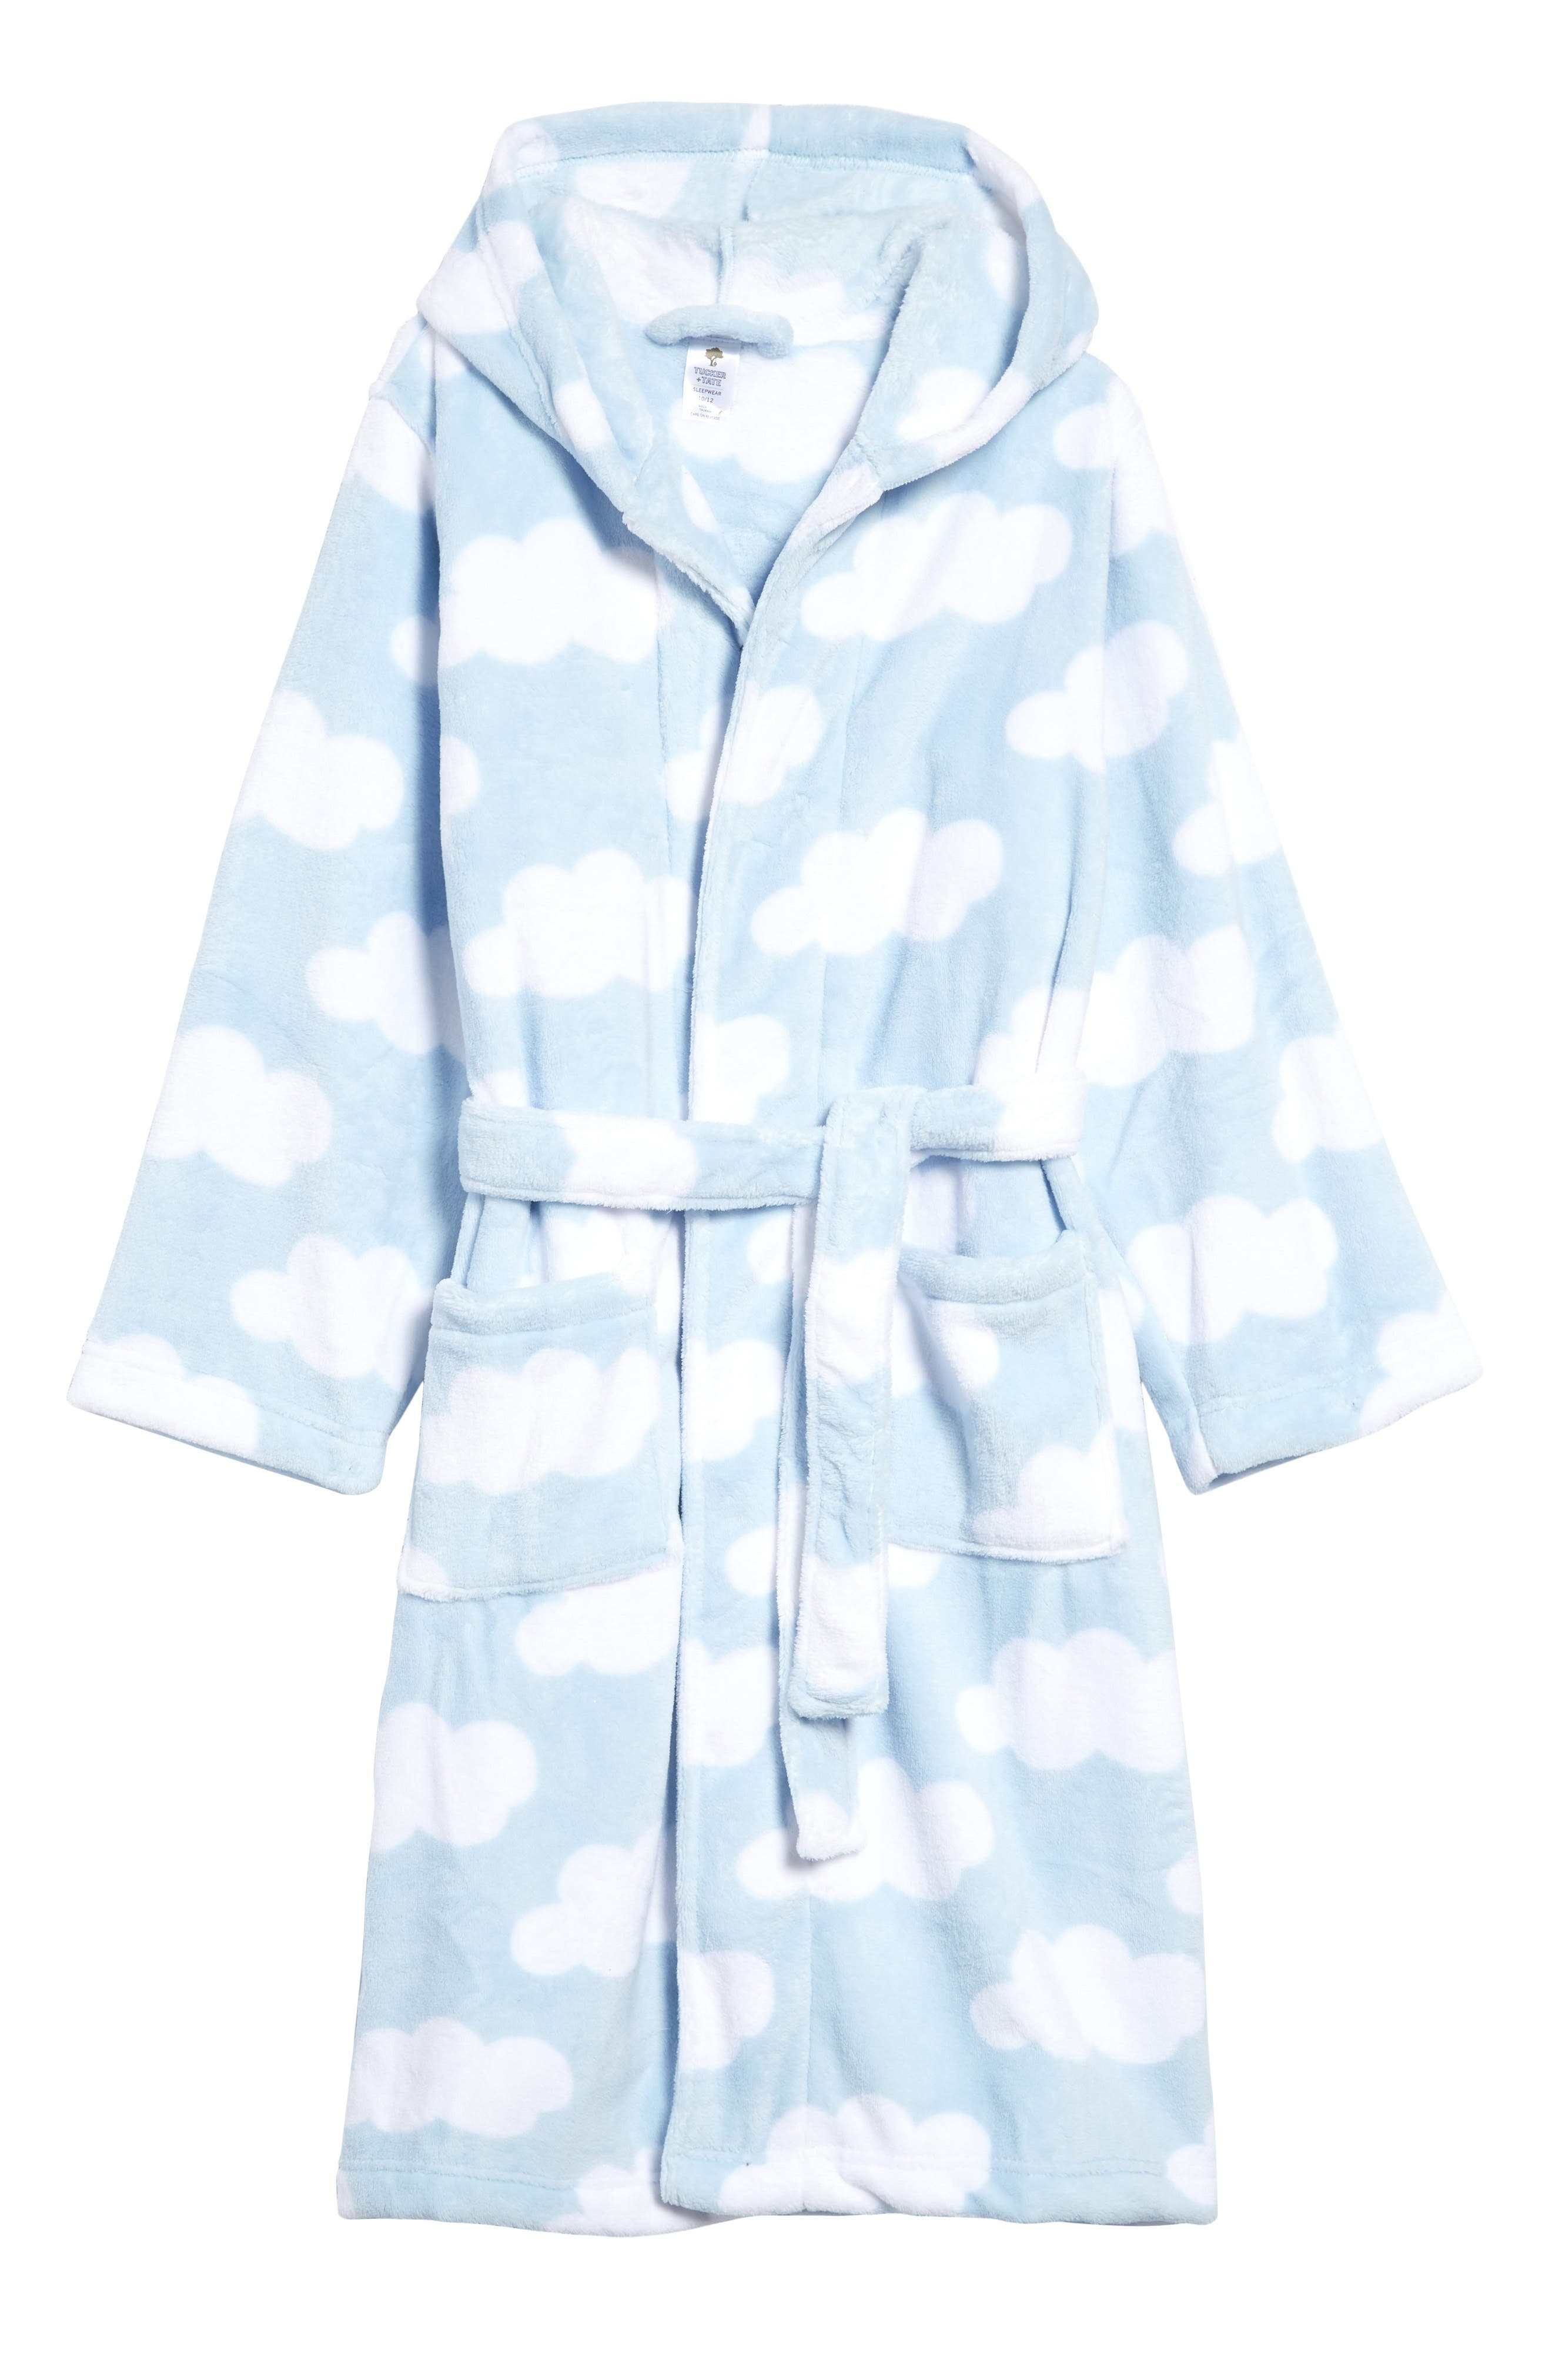 There\\\'s no doubt that she\\\'ll love snuggling up in this brightly patterned fleece robe fashioned with a cozy hood and roomy front pockets. Style Name: Tucker + Tate Kids\\\' Hooded Fleece Robe (Big Girls). Style Number: 1045557 17. Available in stores.